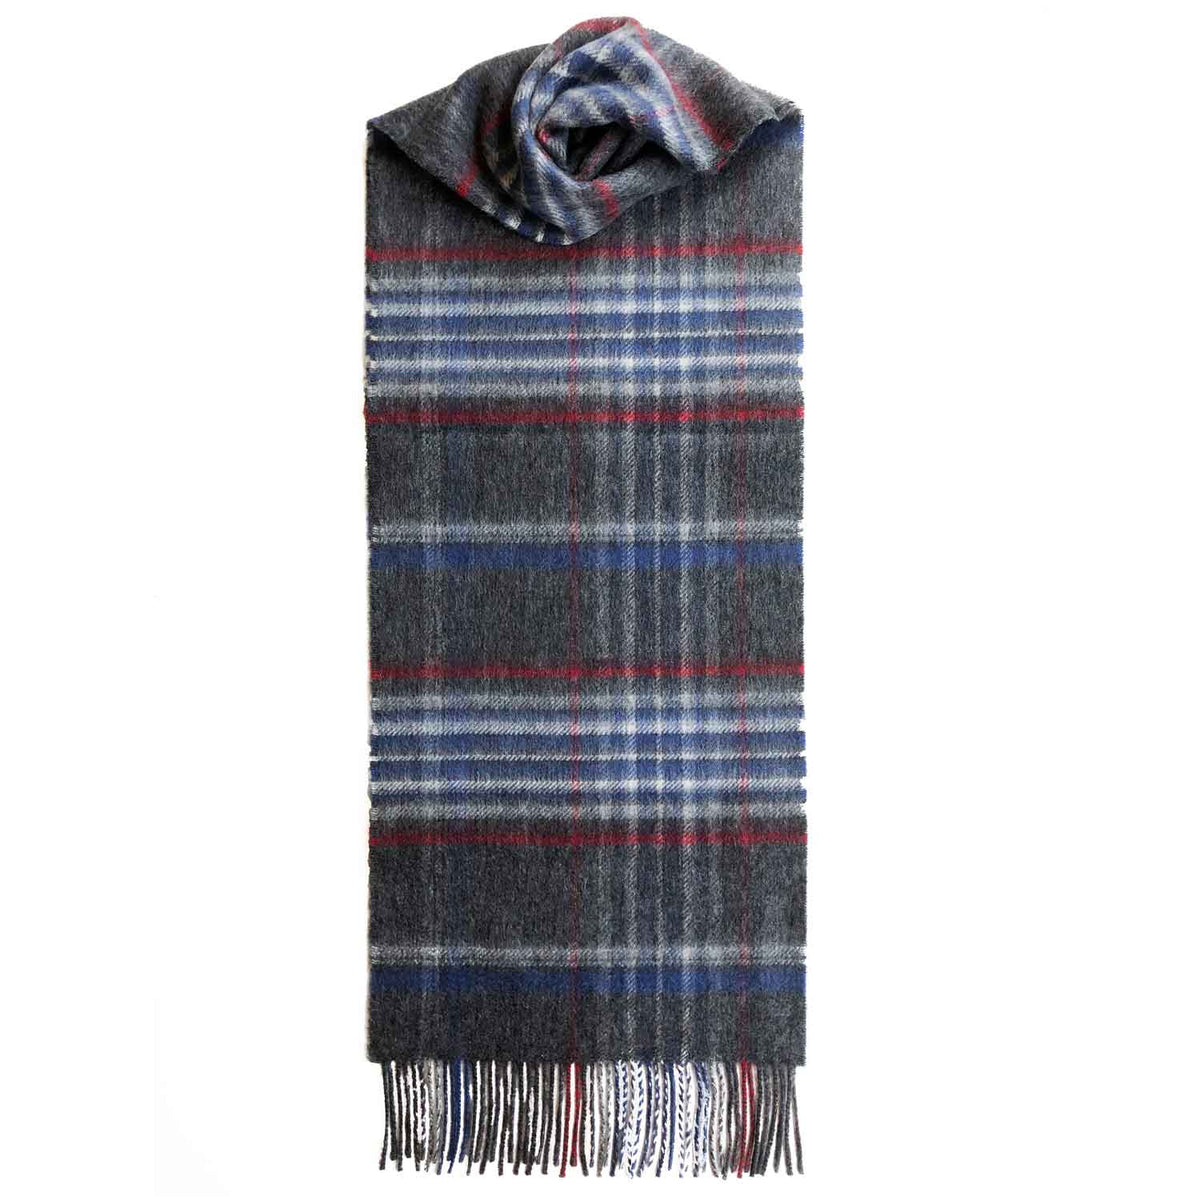 Lomond Cashmere | Grey Red | Check Cashmere Scarf With Fringes | Made in Scotland | Shop at The Cashmere Choice | London